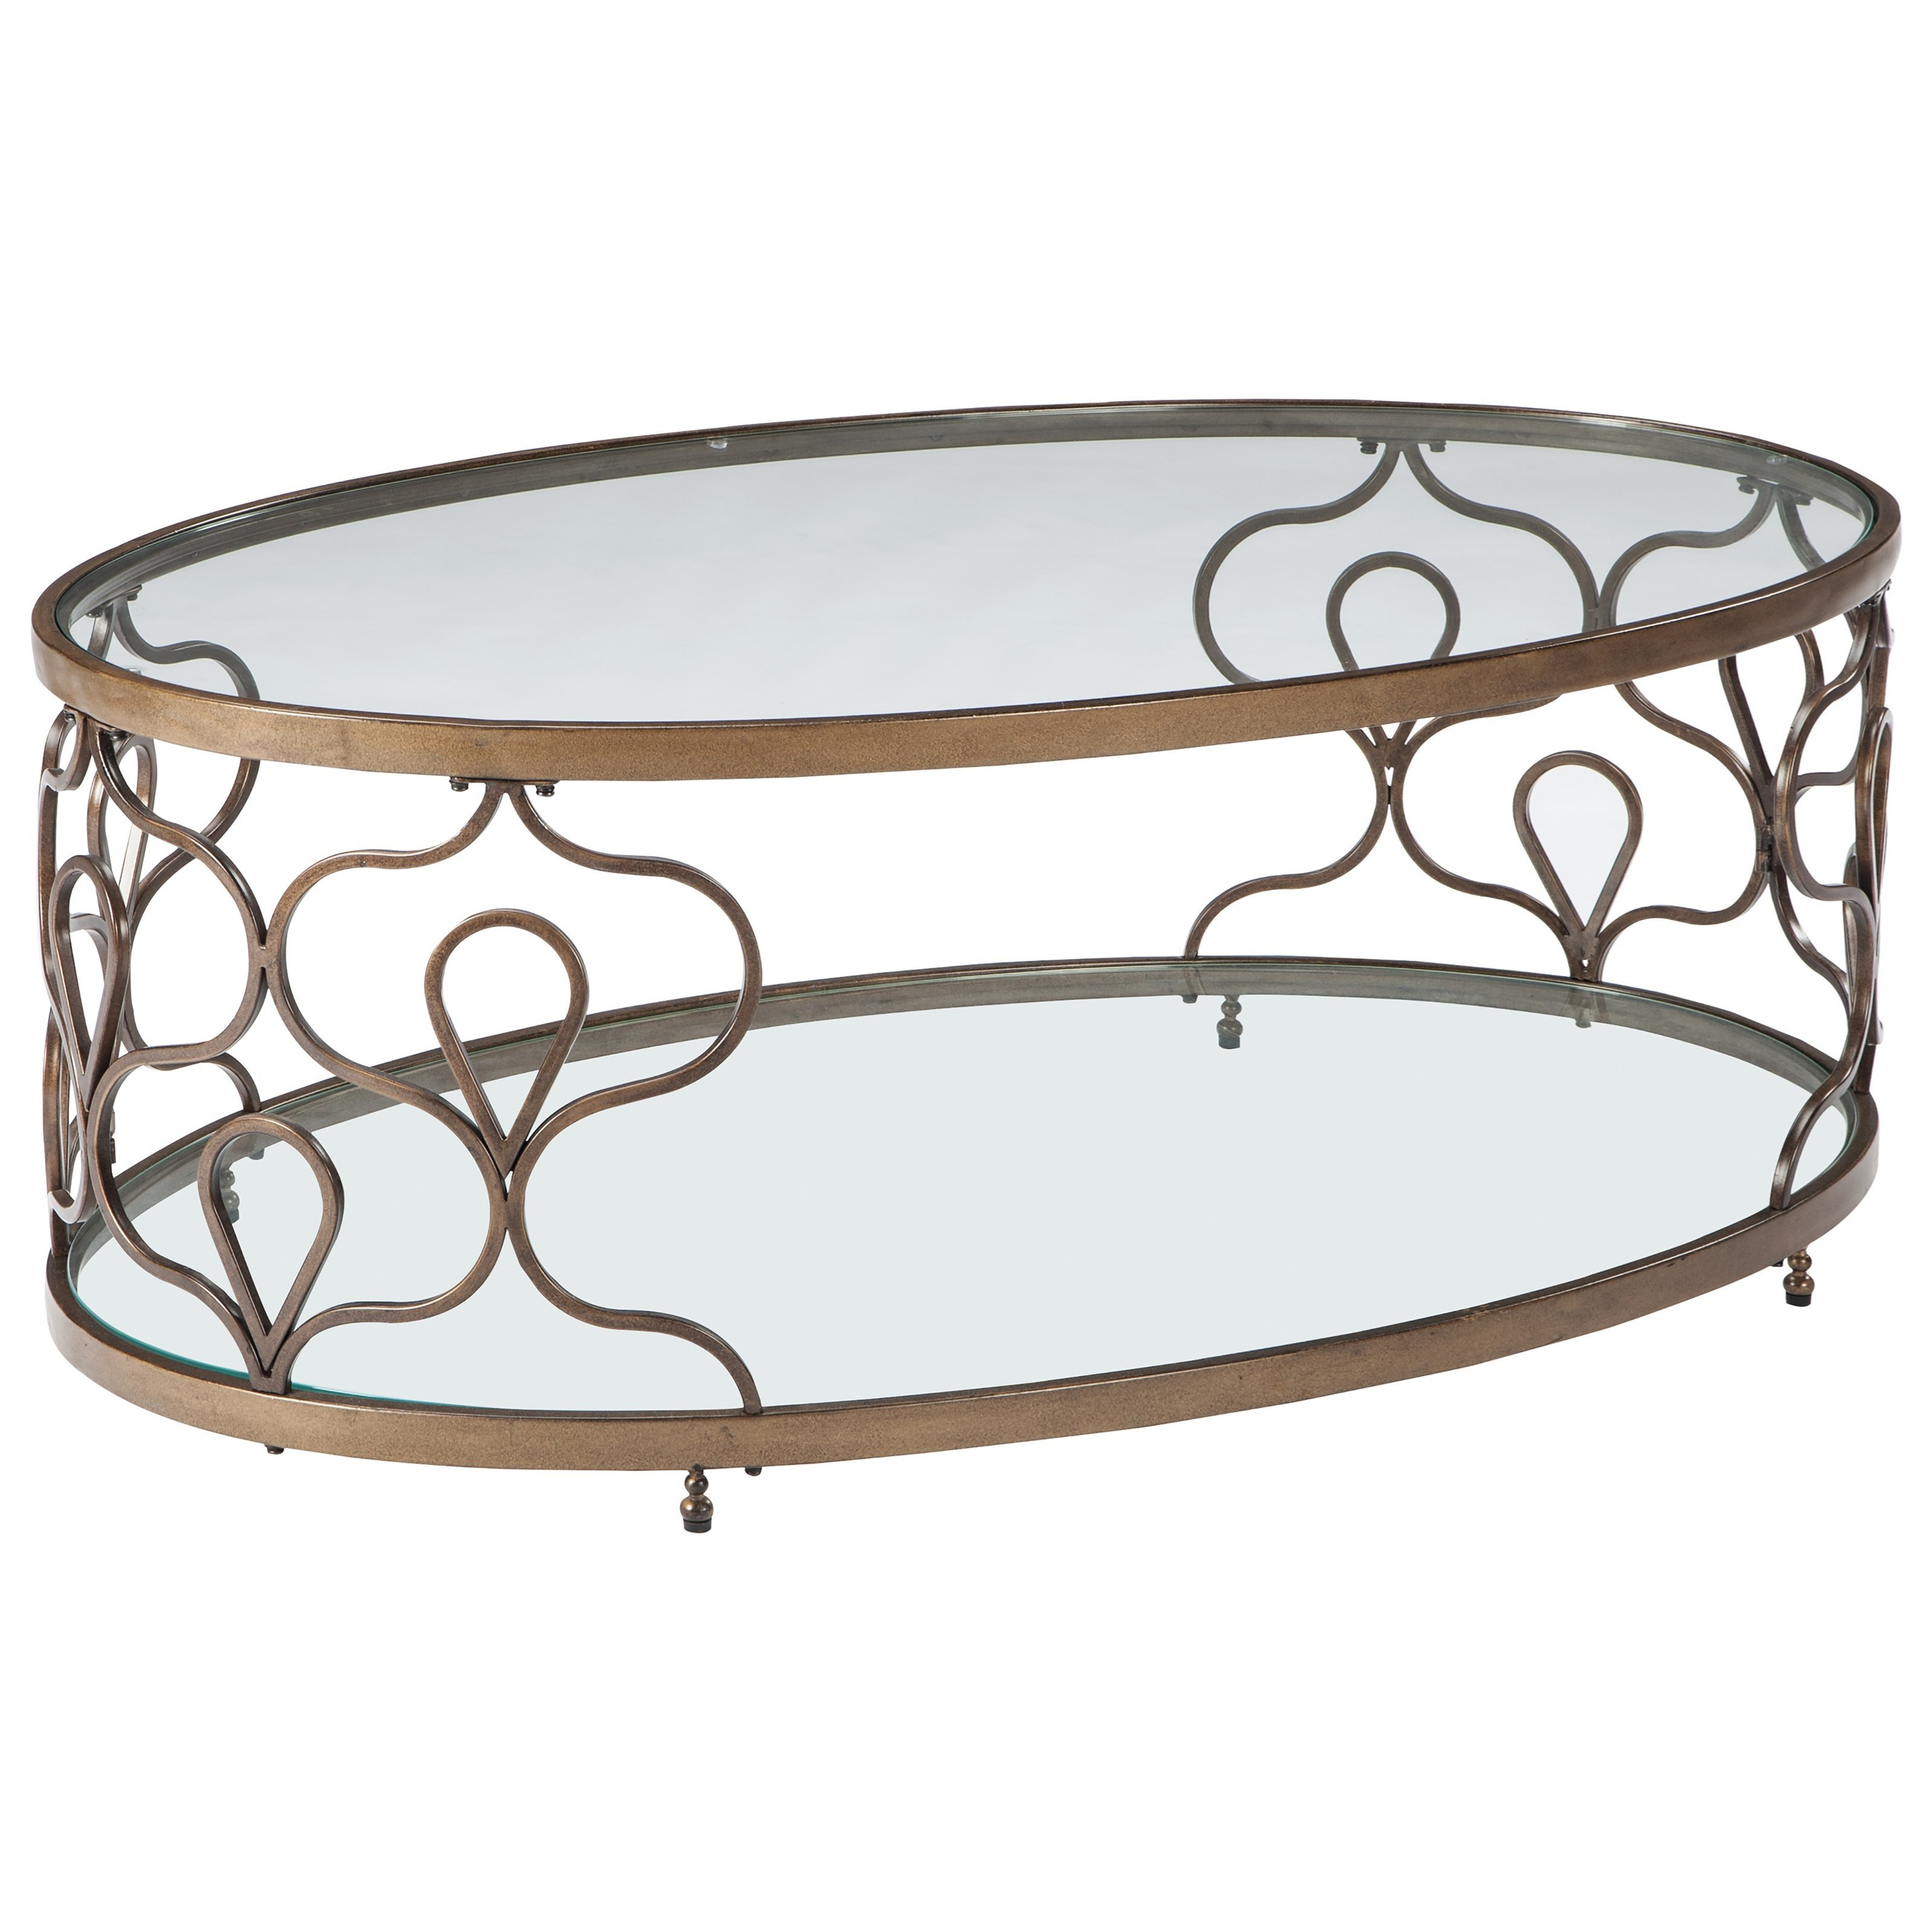 Signature Design By Ashley Fraloni T086 0 Glass Top Oval Cocktail Table In Bronze Finish Del